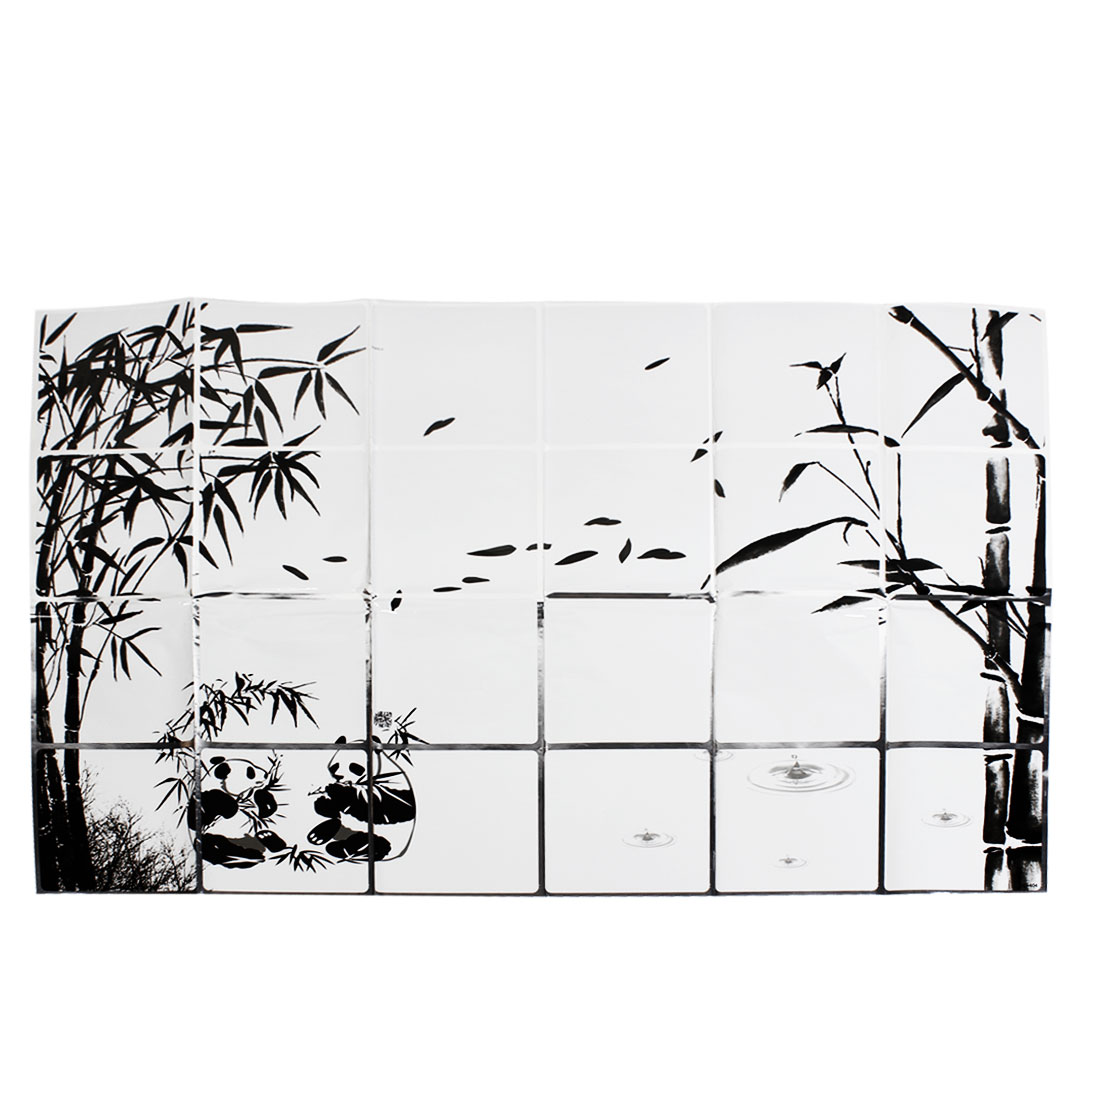 Kitchen Sheet Black White Bamboo Panda Print Hot-Proof Wall Sticker Decal 60cmx90cm